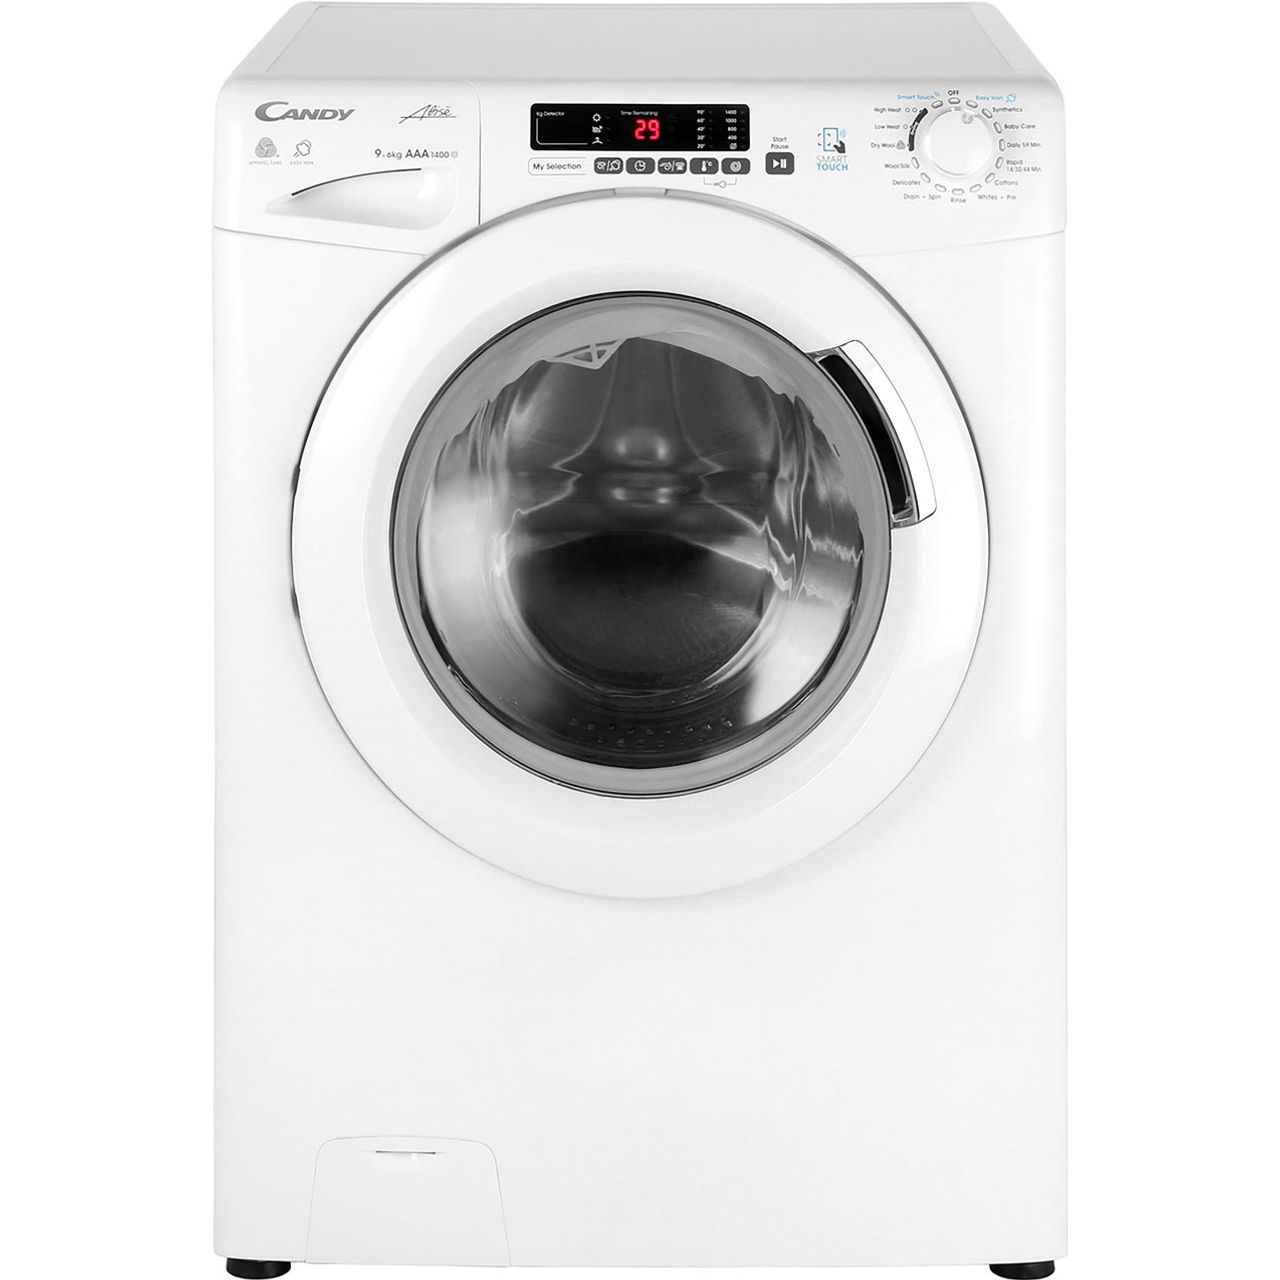 Gvsw496dwh Candy Washer Dryer White Aocom